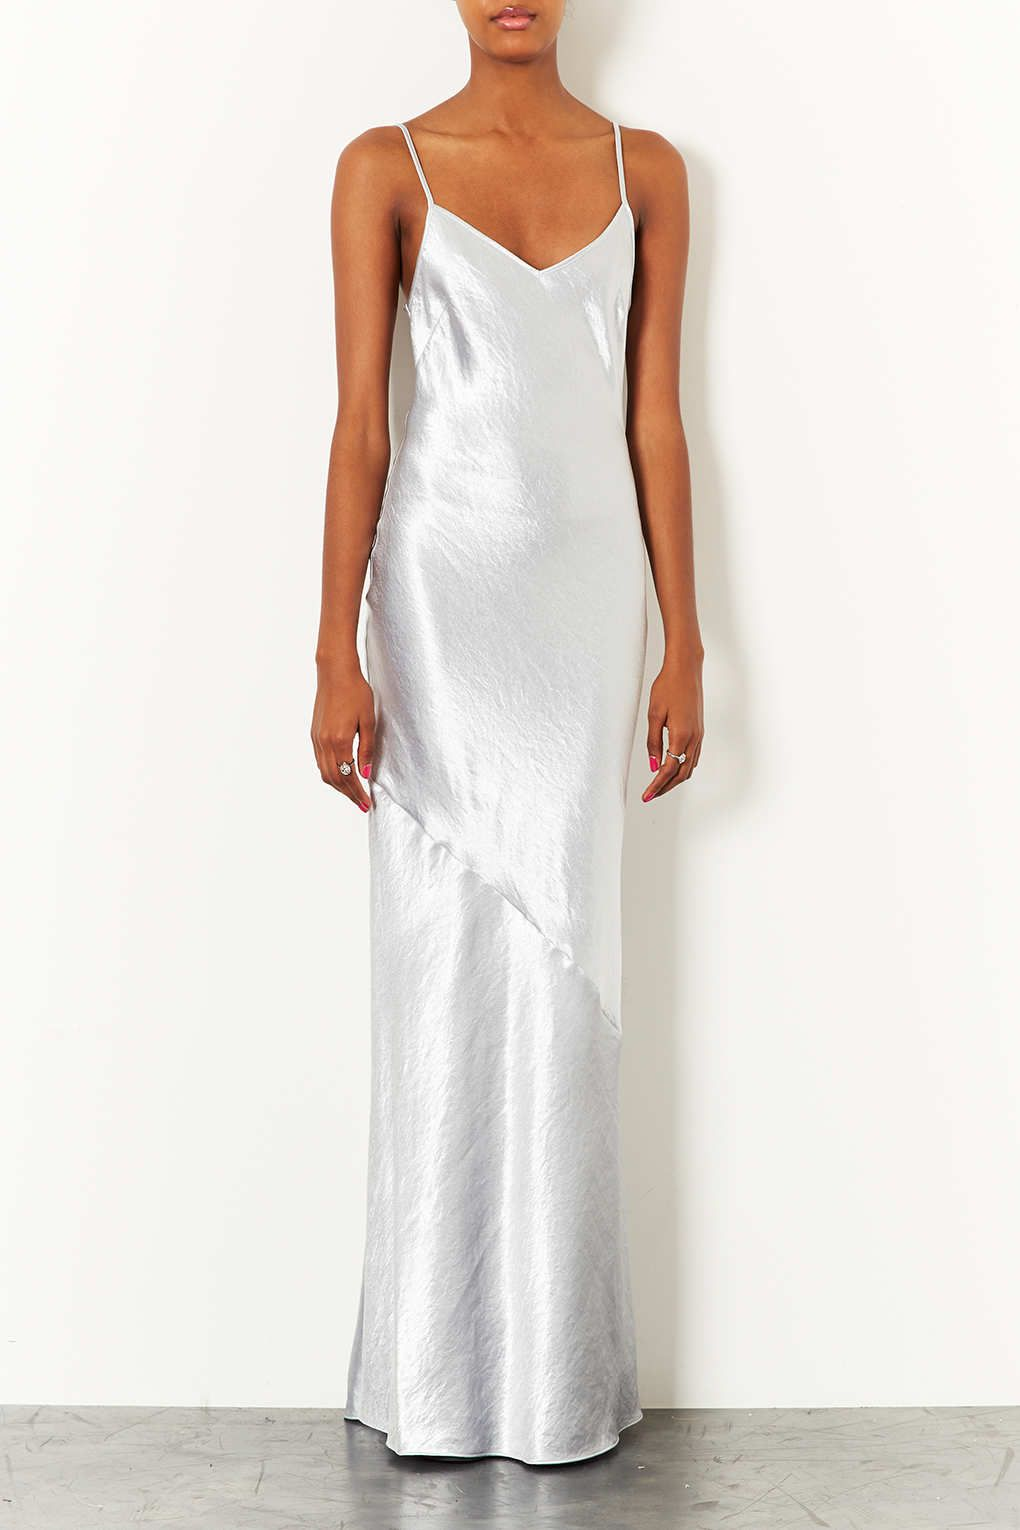 Topshop Strappy Satin Maxi Dress in White (SILVER)  0e1c1c66f